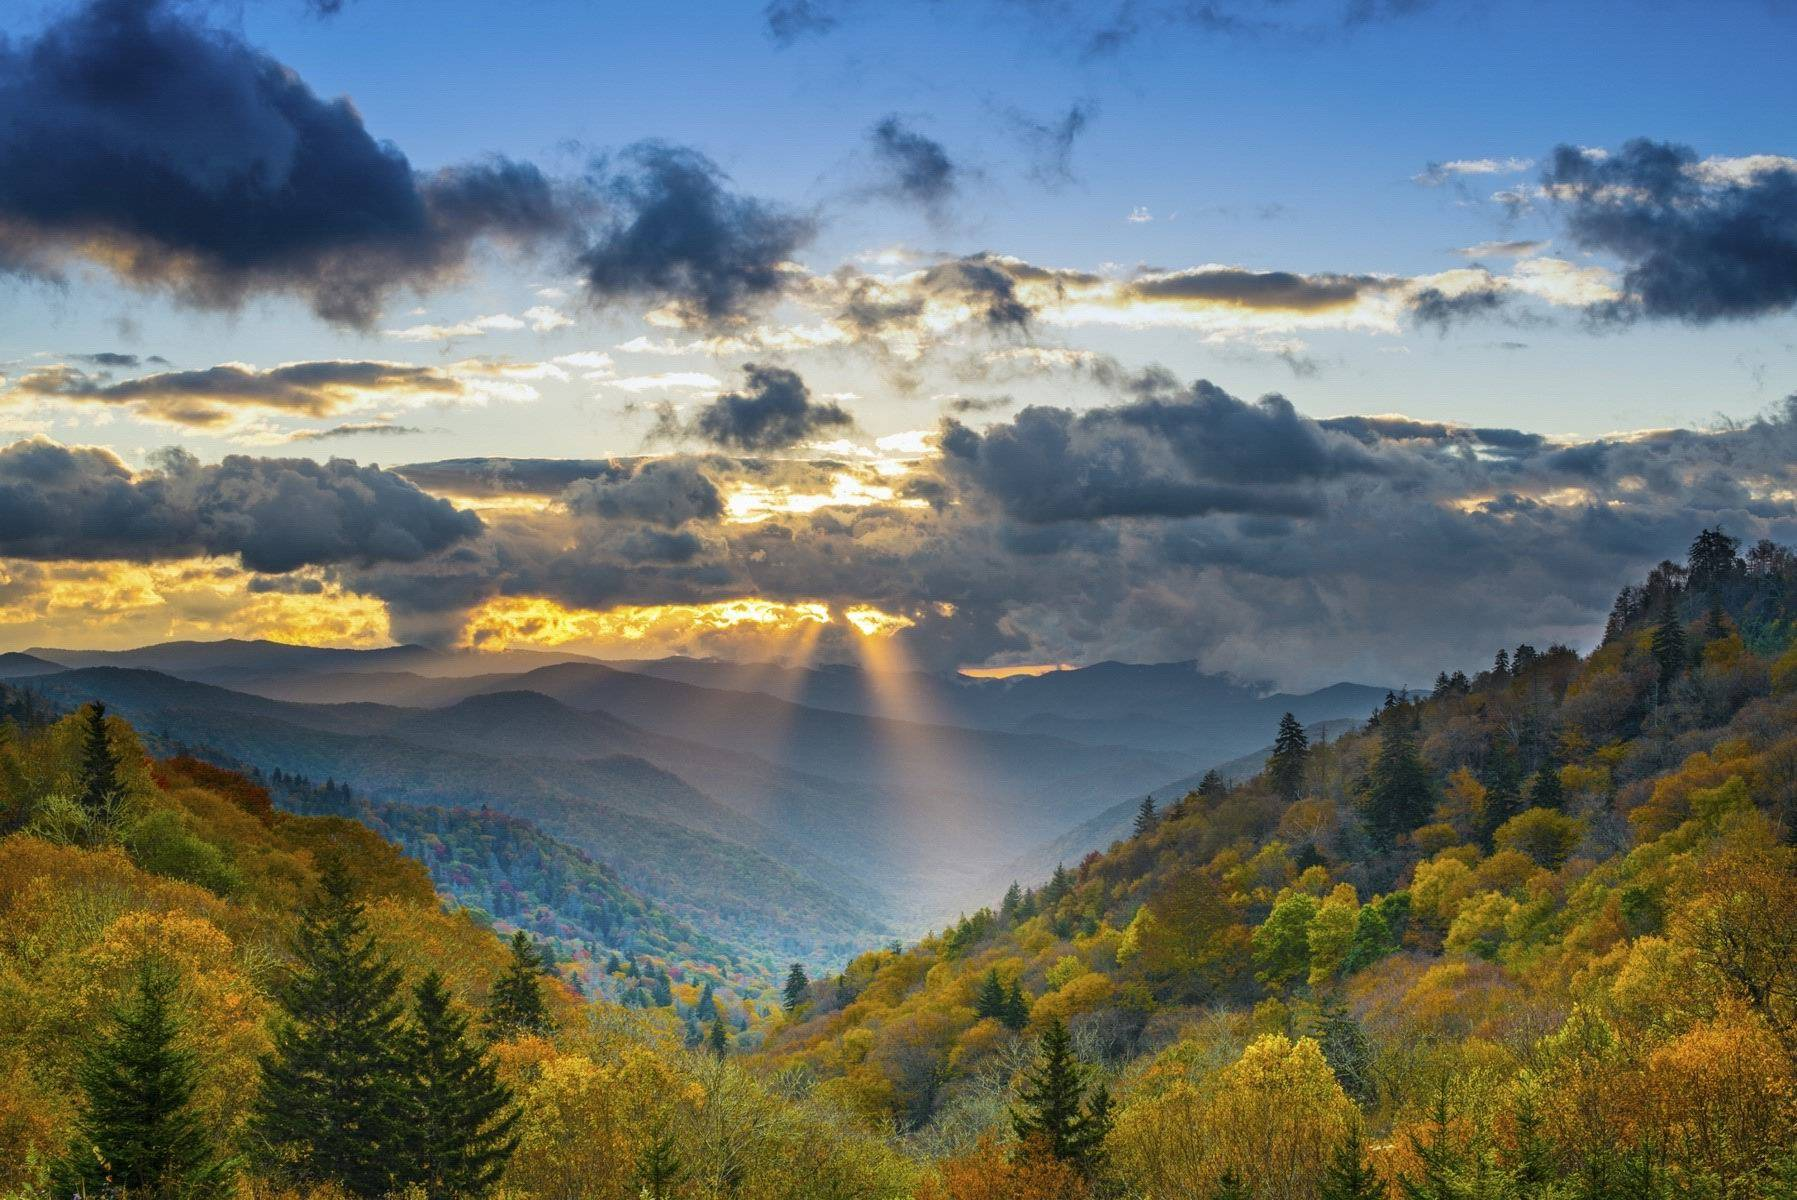 4-Day New York to Tennessee Tour: Great Smoky Mountains (Super Value)